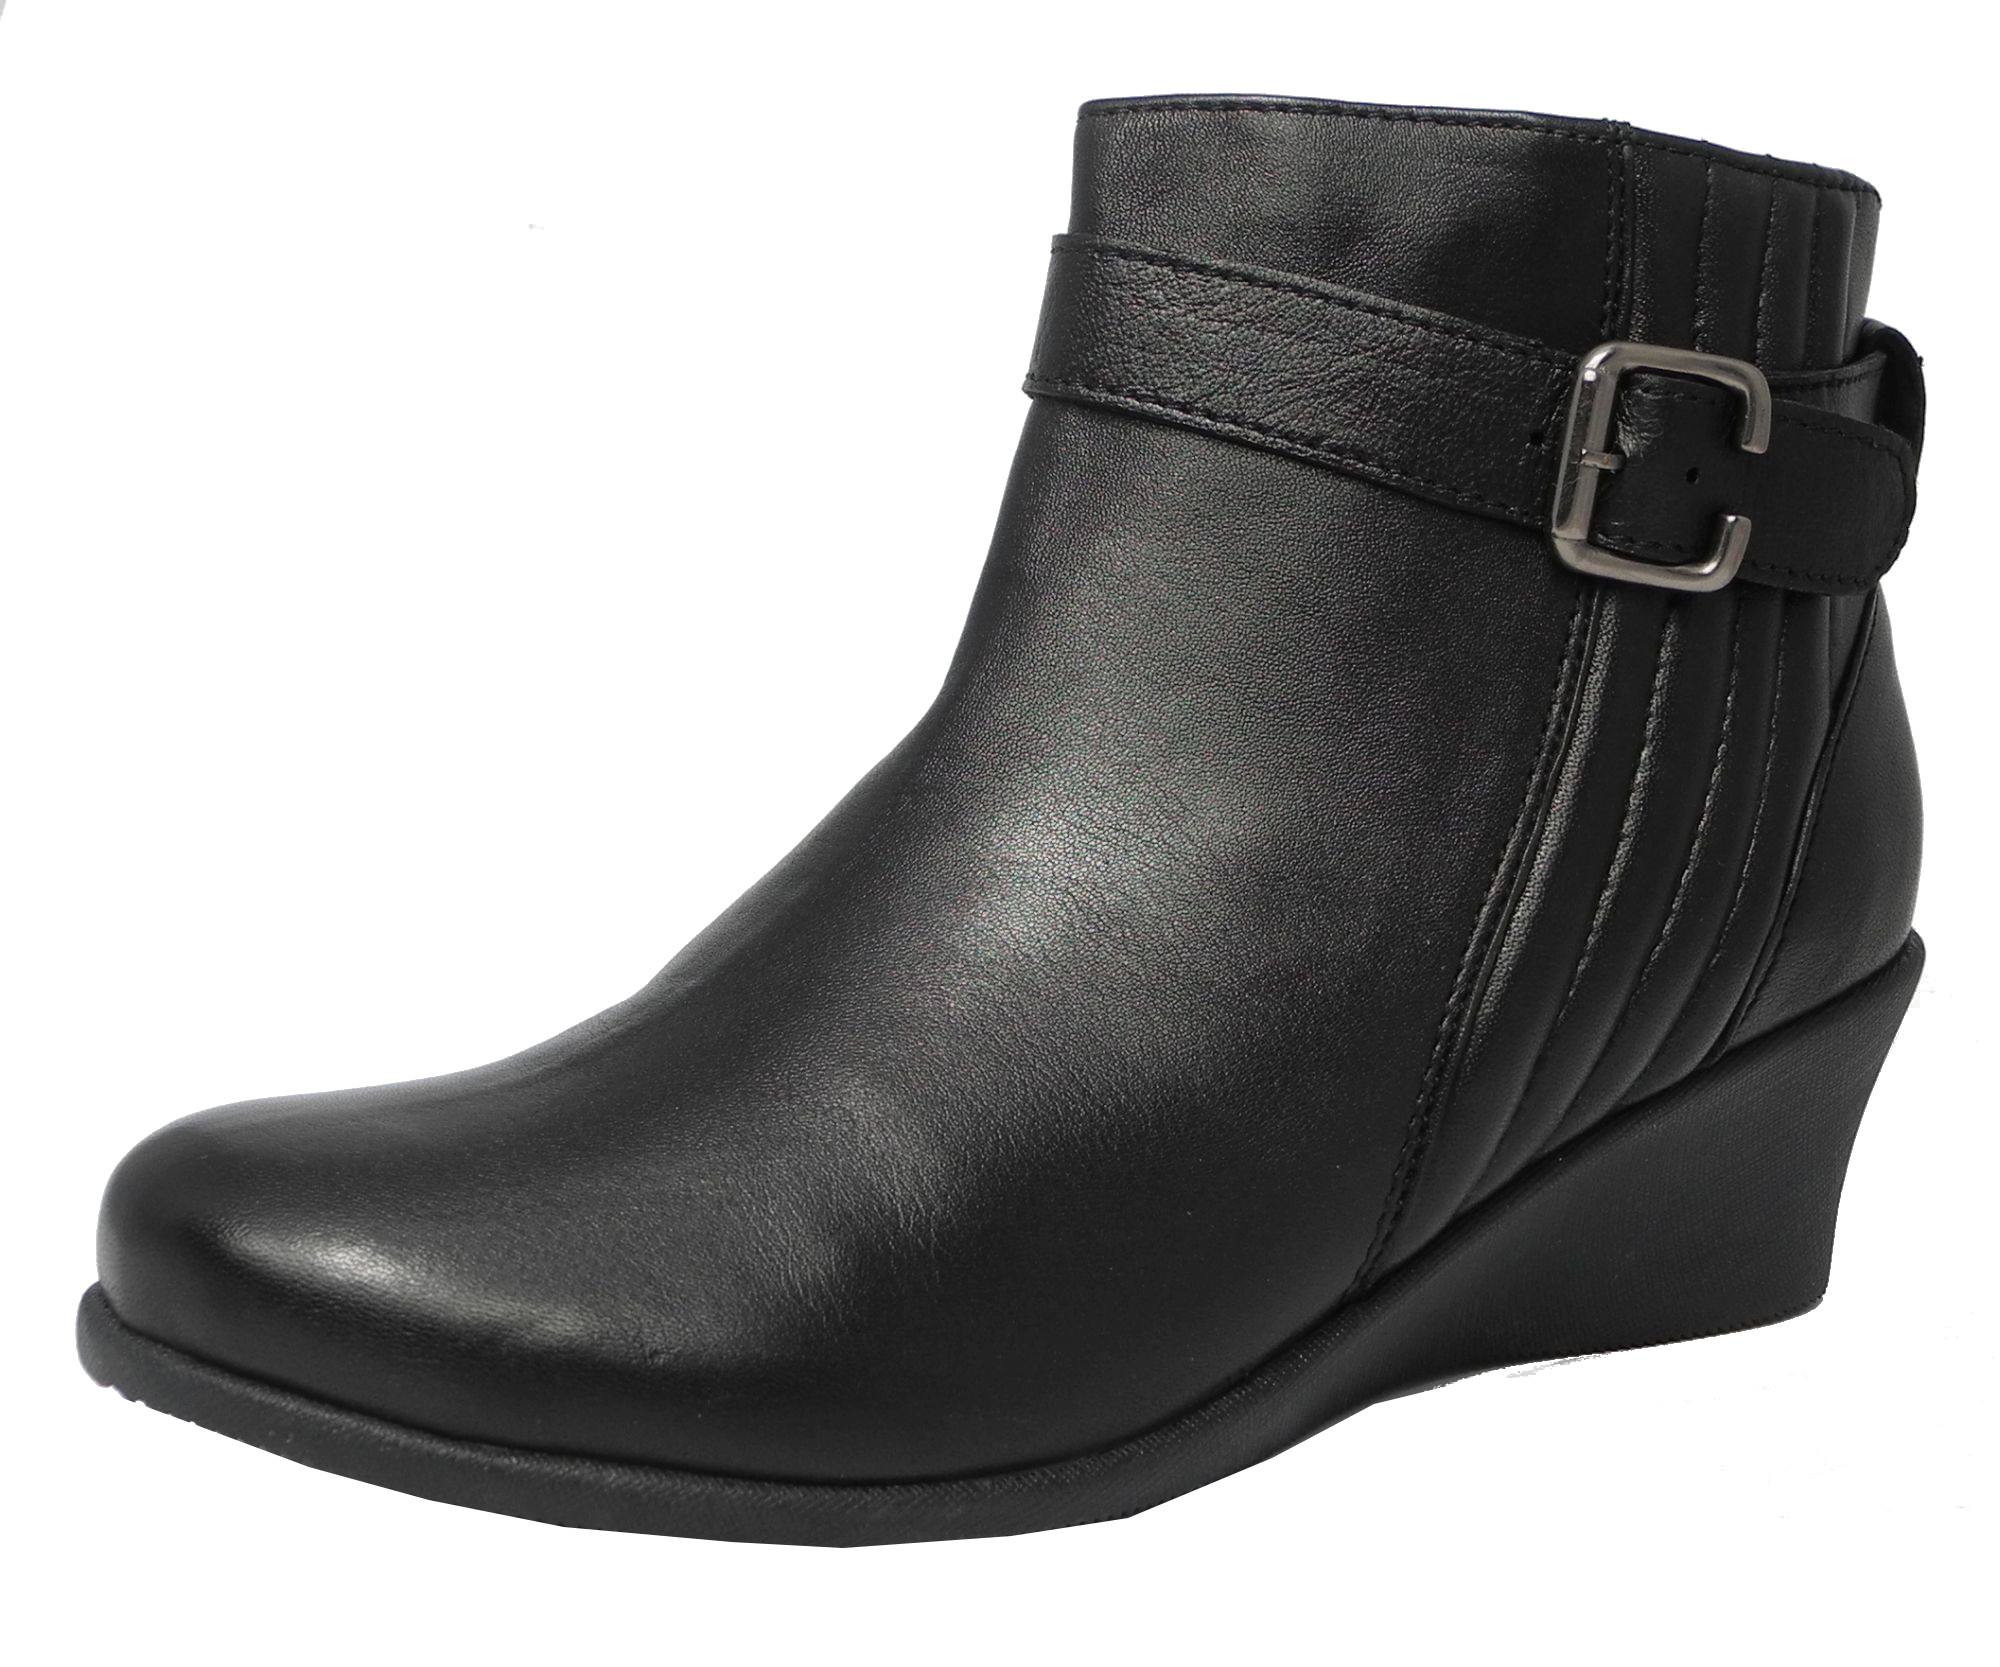 Find great deals on eBay for womens black wedge boots. Shop with confidence. Skip to main content. eBay: New Listing TEVA Jade Cove Boots Womens 11 Knee High Black Leather Wedge Heel Boot Shoes. Pre-Owned. $ Buy It Now +$ shipping. New Listing New Alfani Womens Short Boots 8 Black Wedge Heal Zipper.